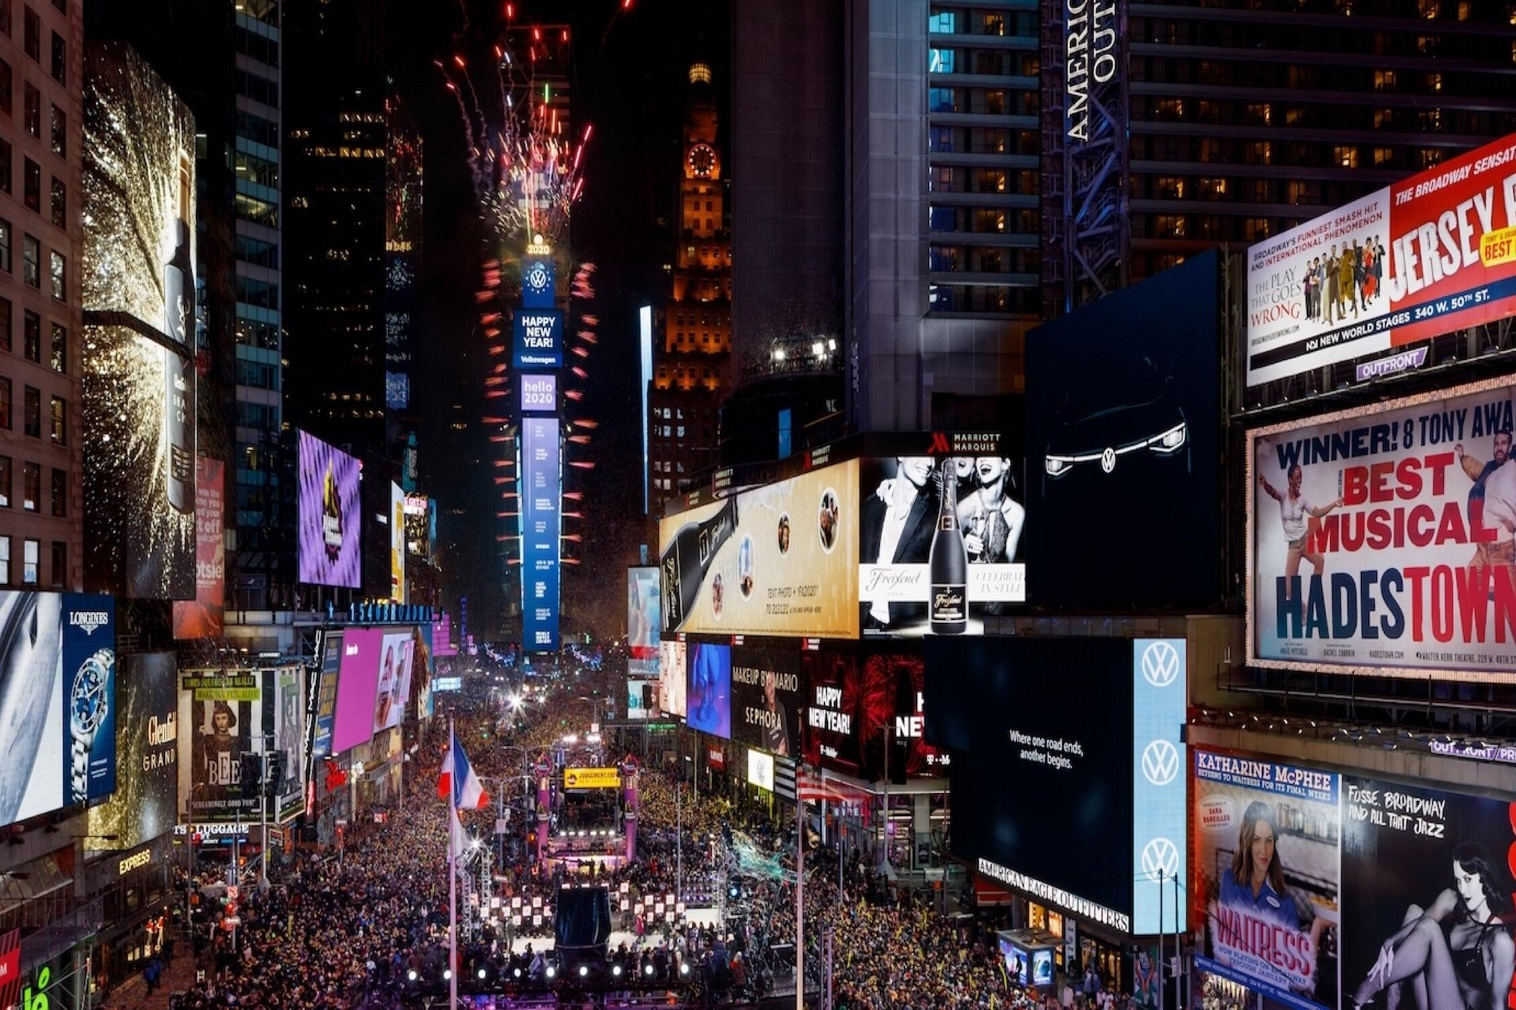 Organizers of the New Year's Eve Ball Drop Celebration invite families around the world to post video messages on Instagram describing their hopes for 2021; a select few may be chosen to participate in a live broadcast hosted by Wonderama's David Osmond.